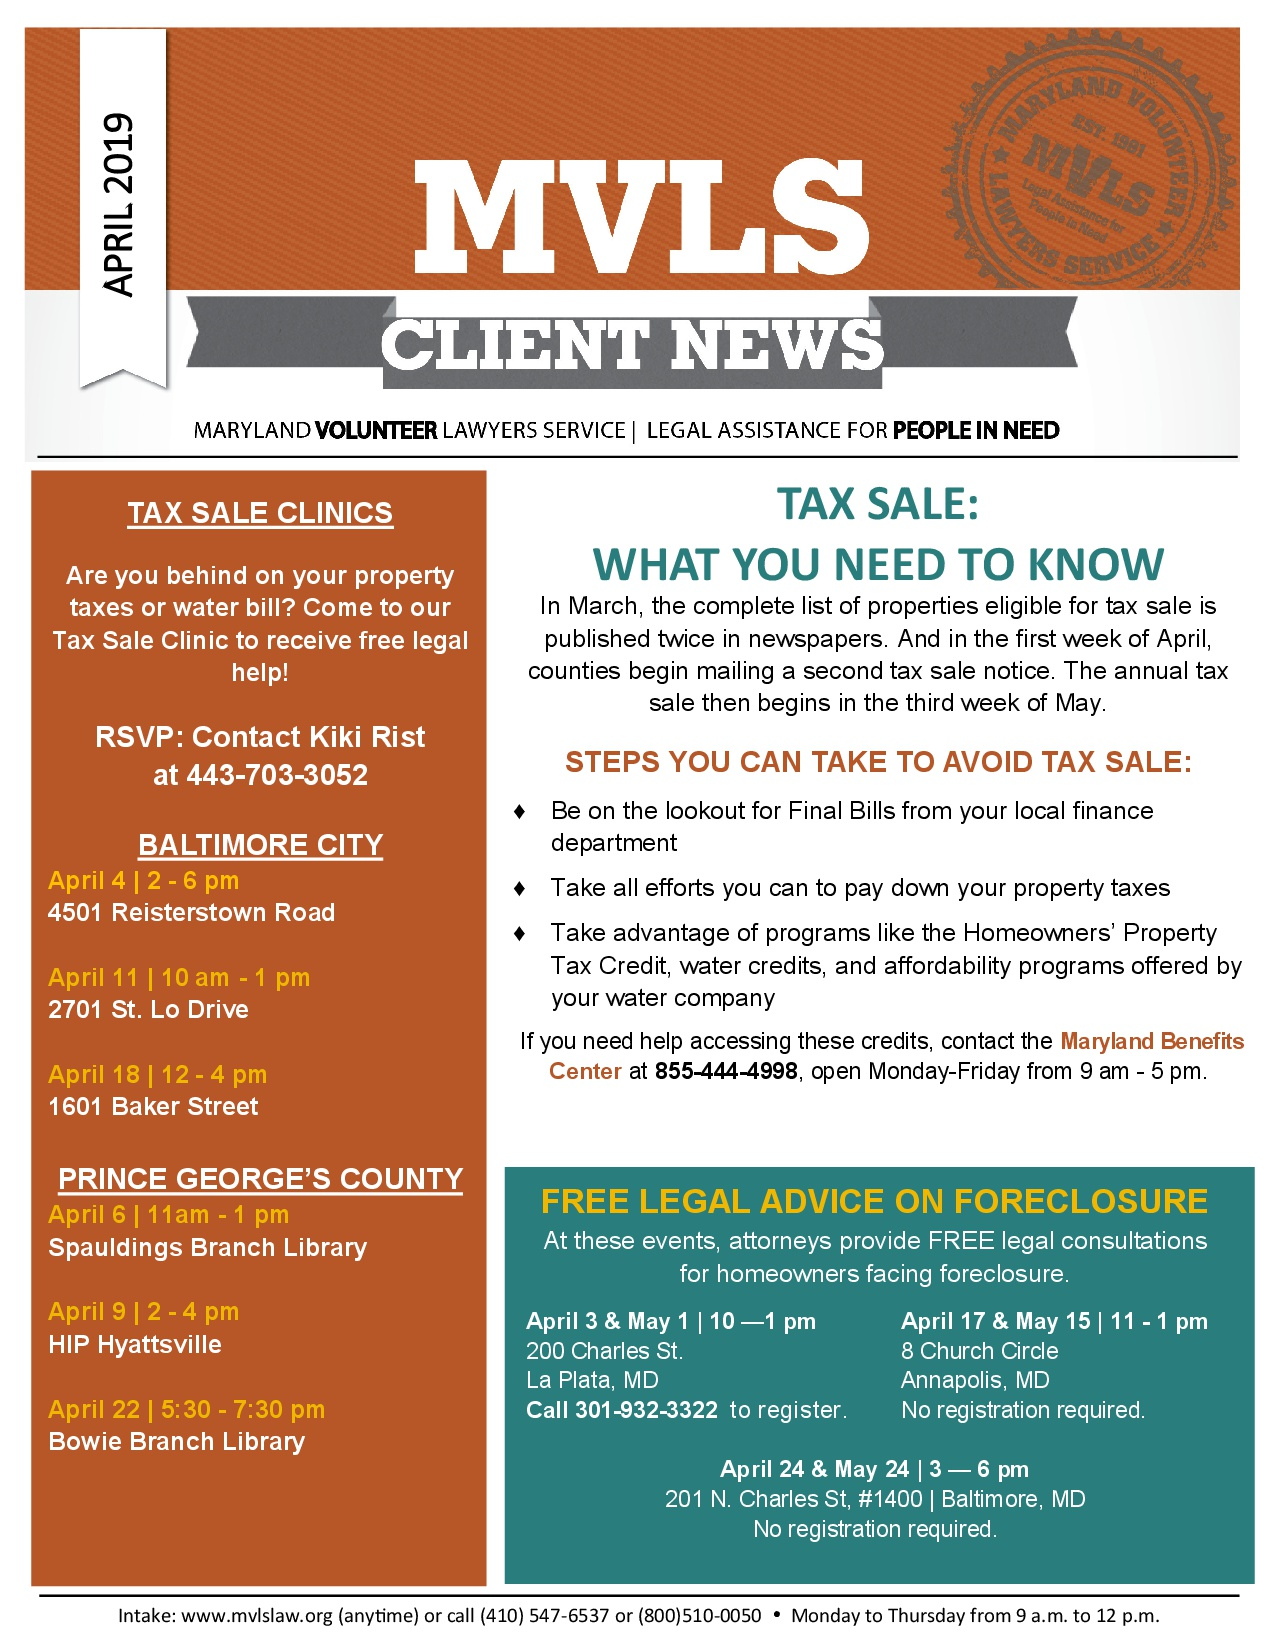 Monthly Client Newsletters - MVLS